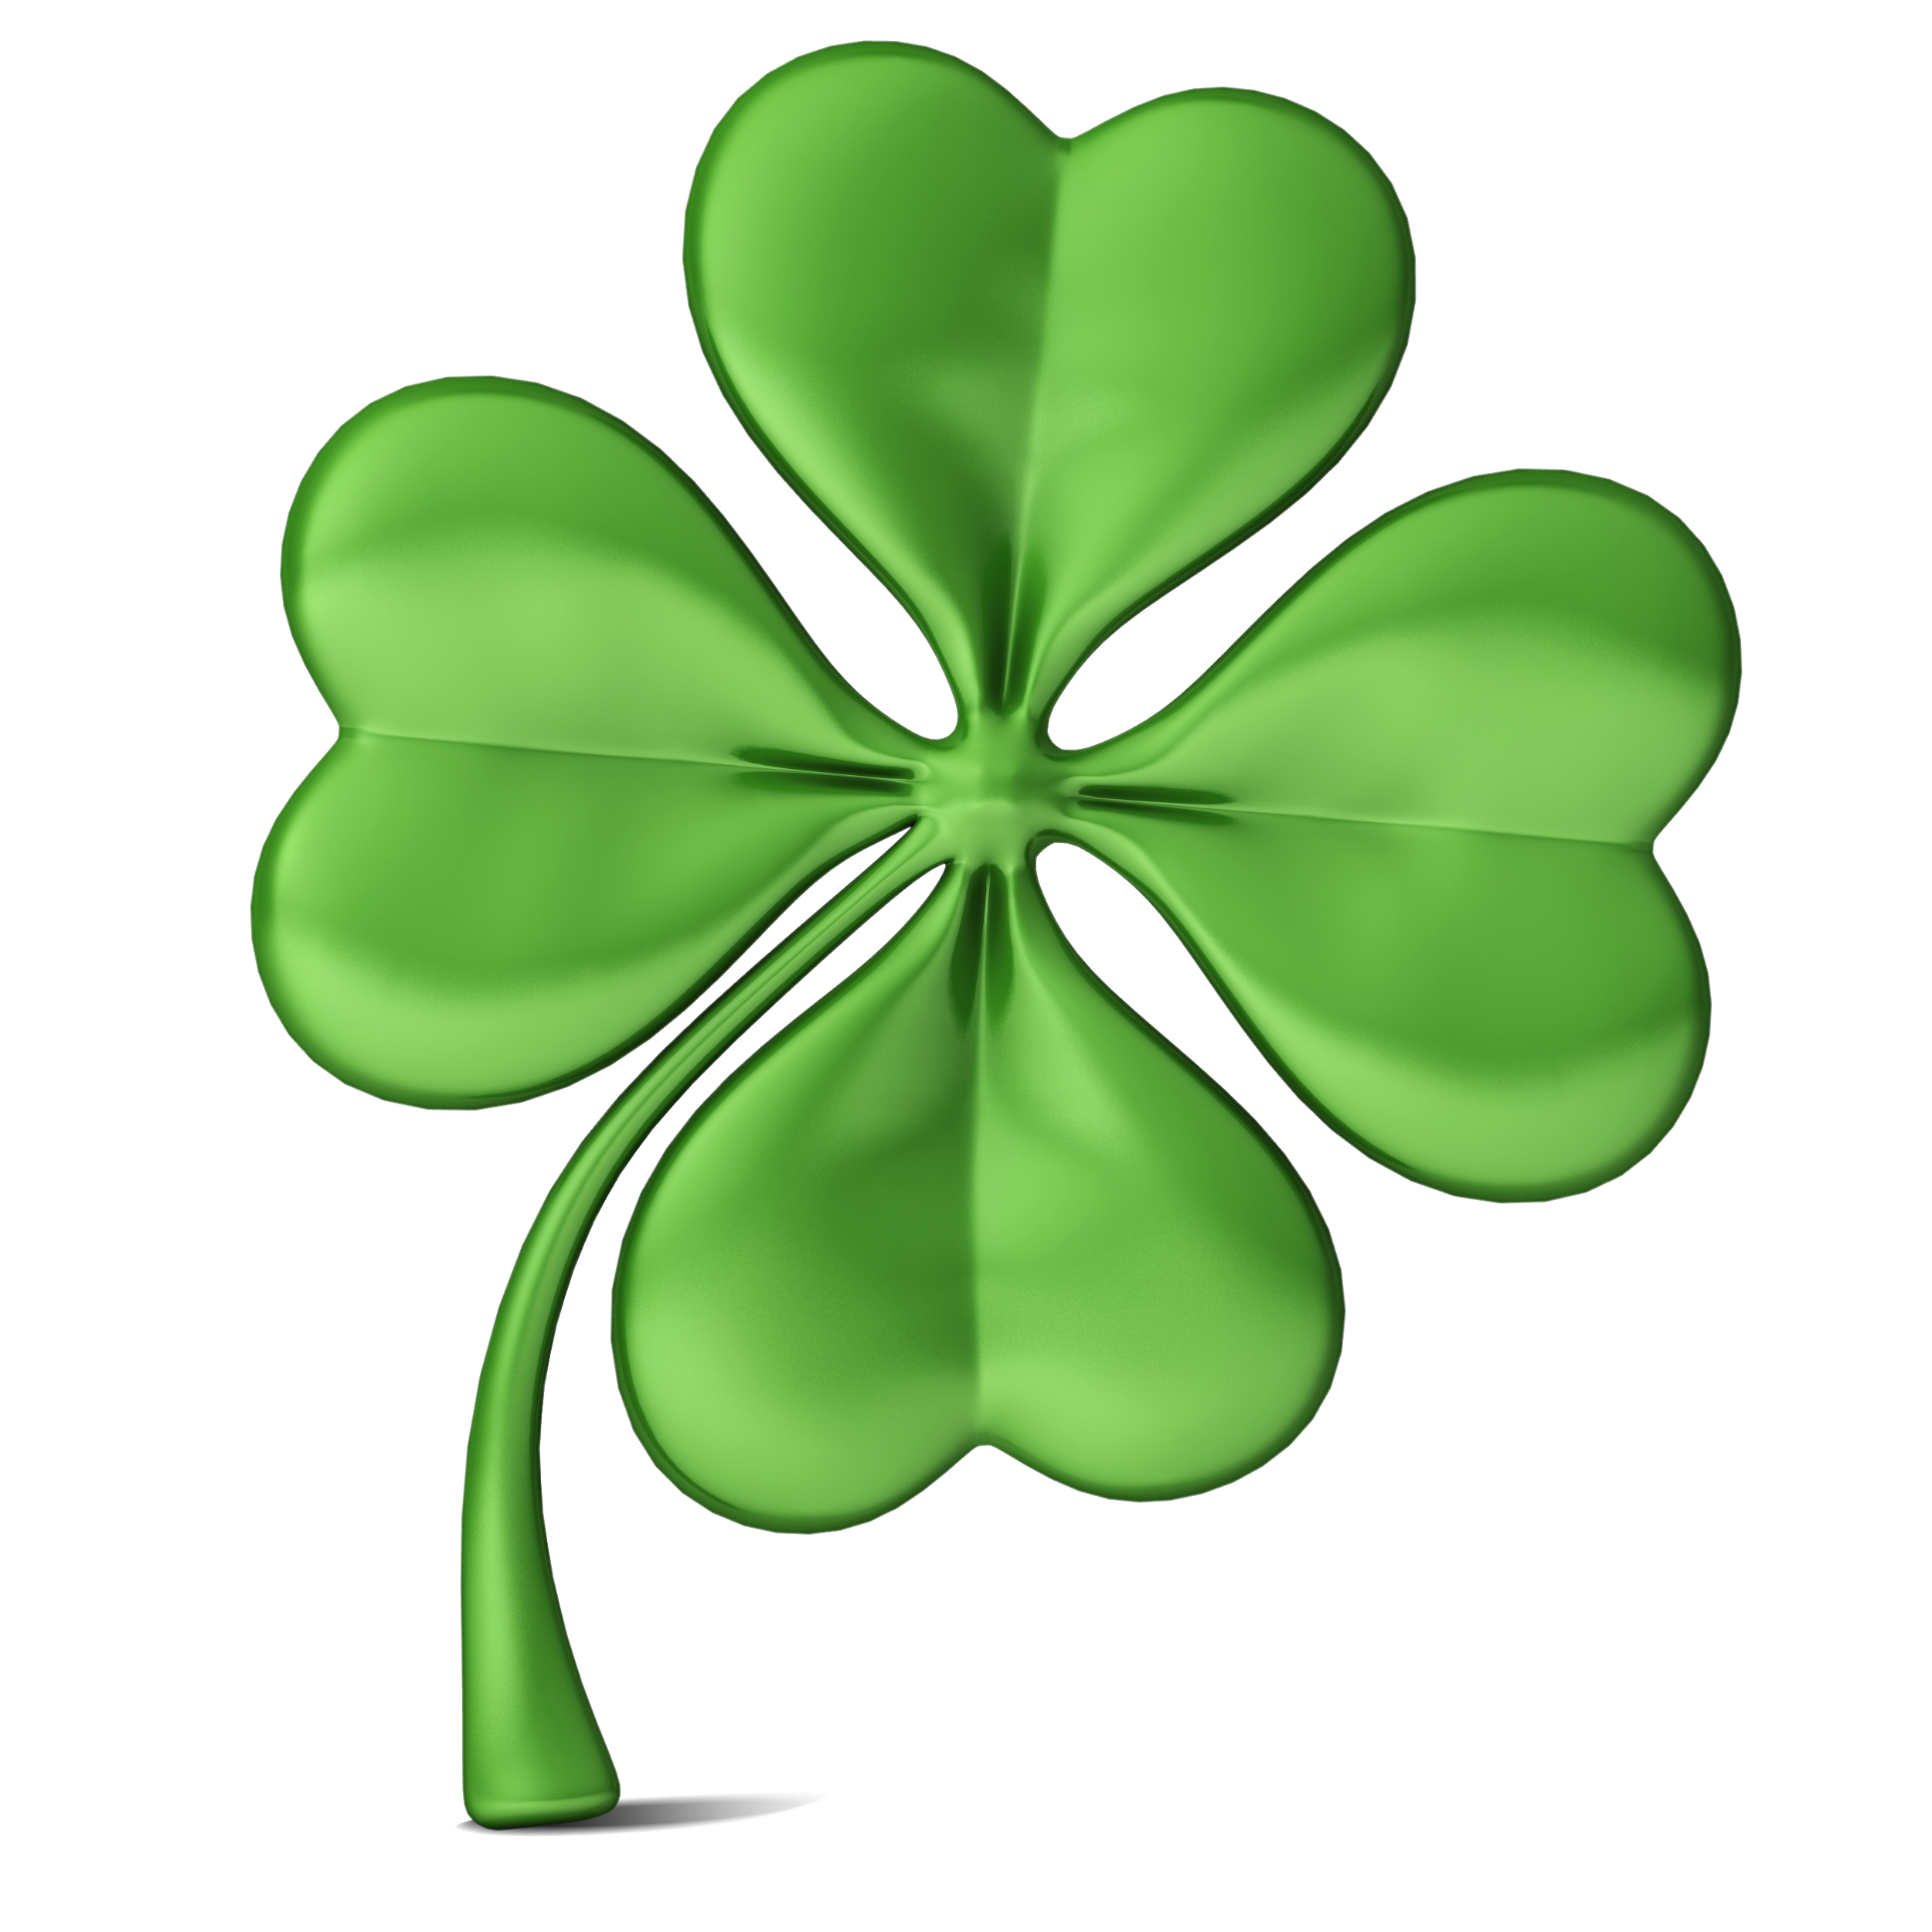 Clover PNG Image